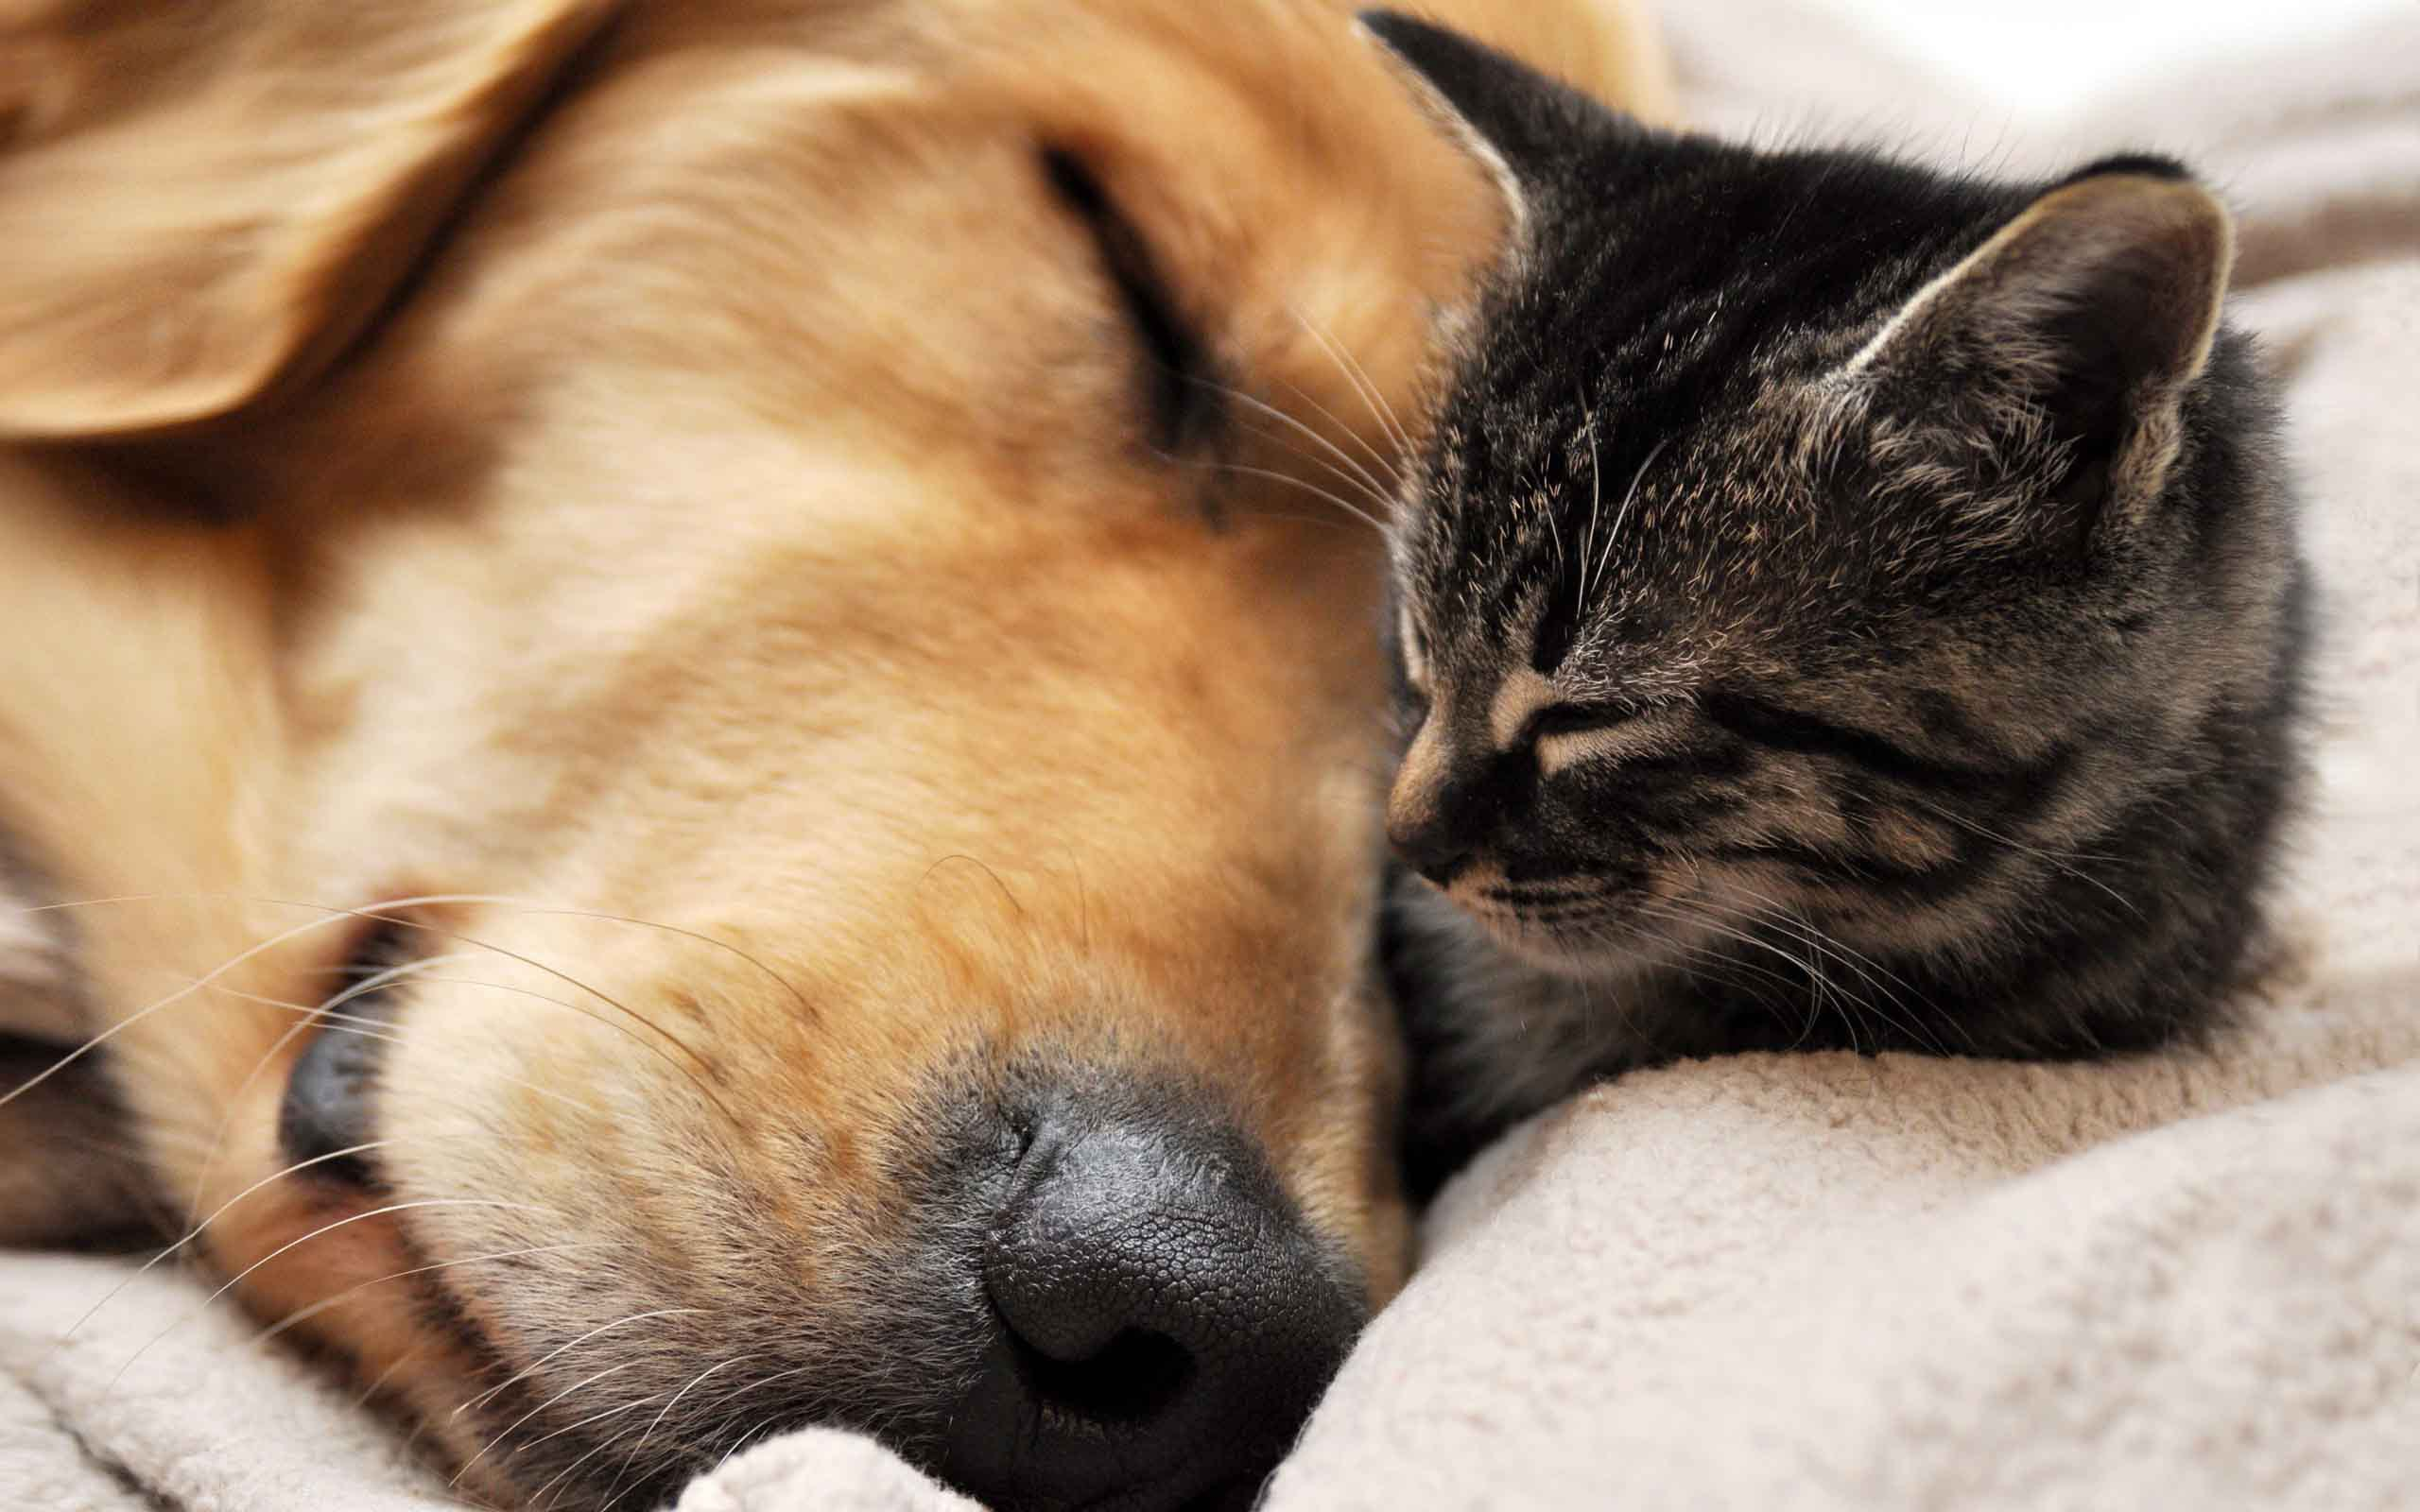 Cat and dog sleeping wallpapers and images   wallpapers pictures 2560x1600